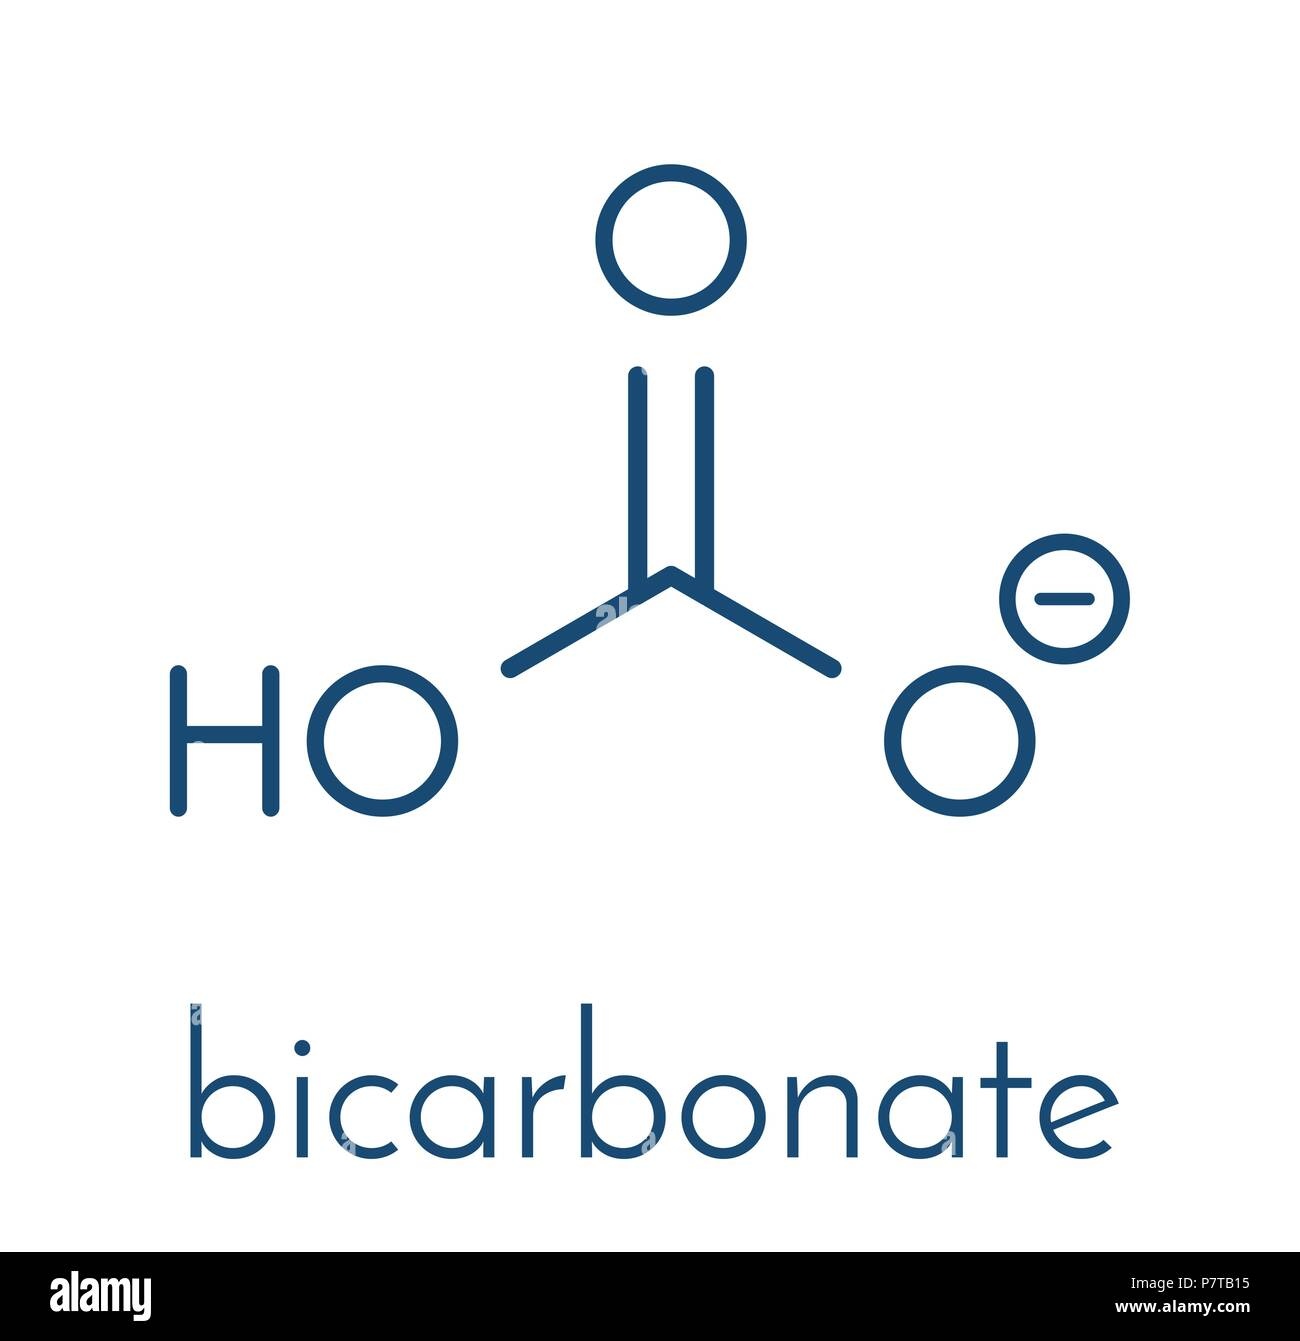 Bicarbonate Anion Chemical Structure Common Salts Include Sodium